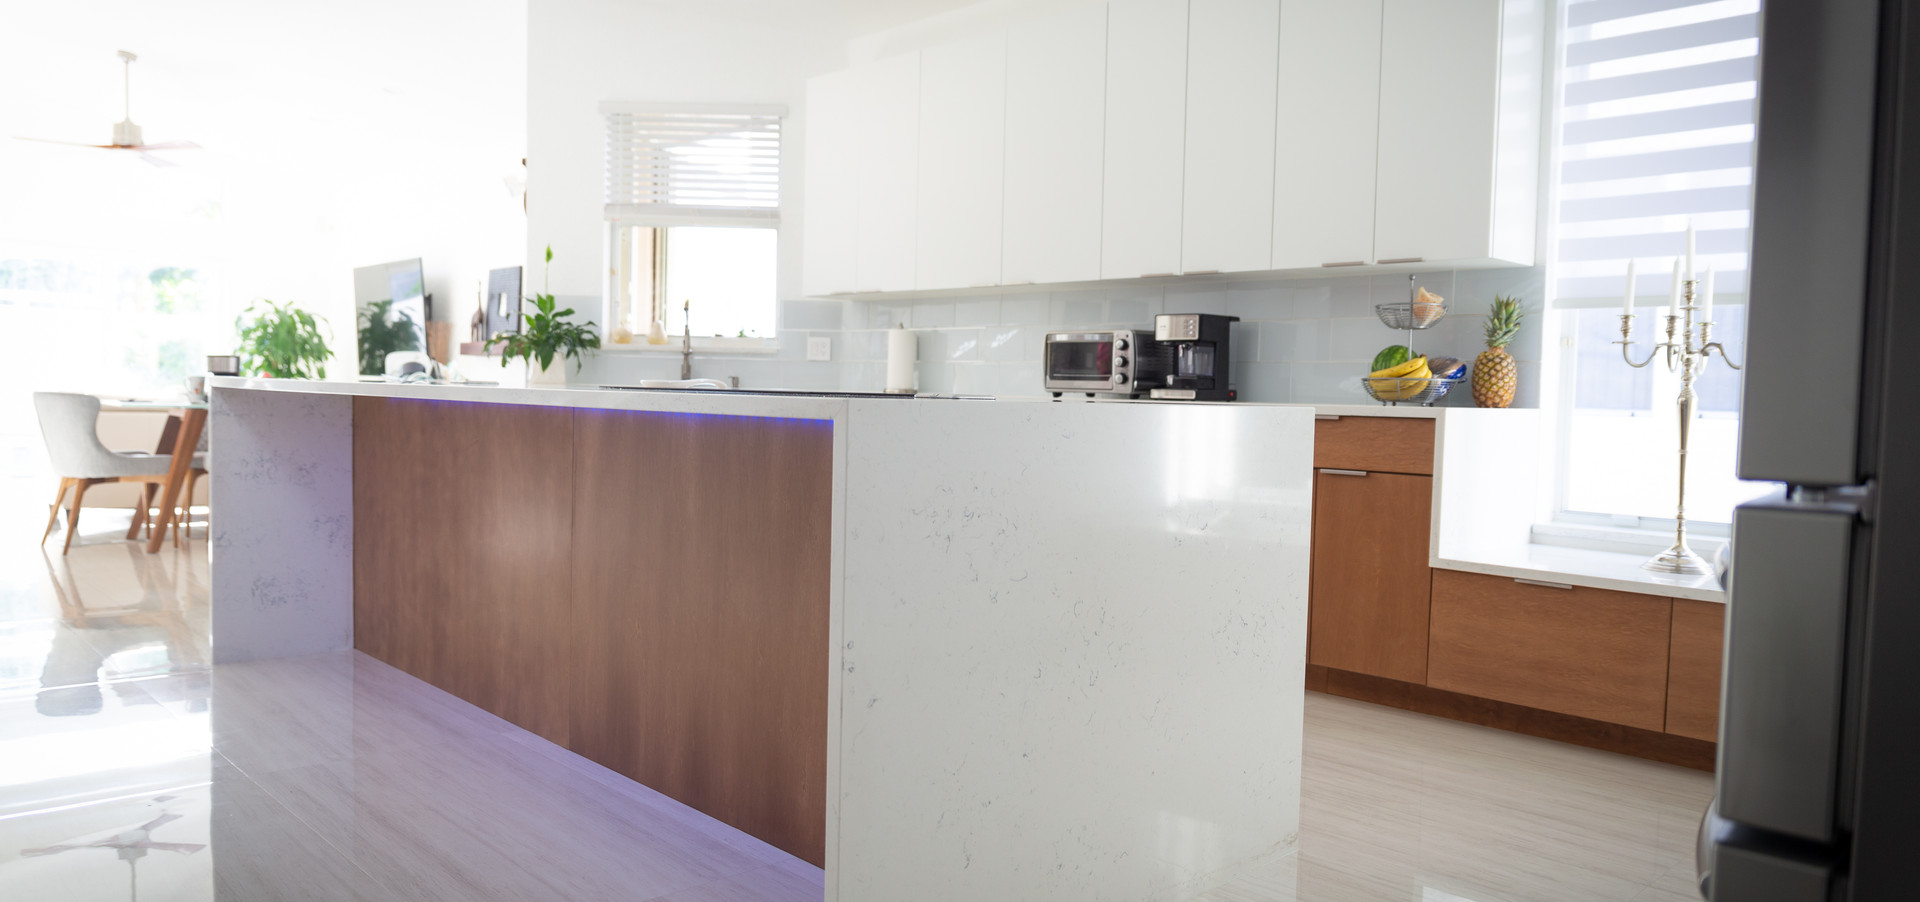 Contemporary Kitchen with Mixed Finishes